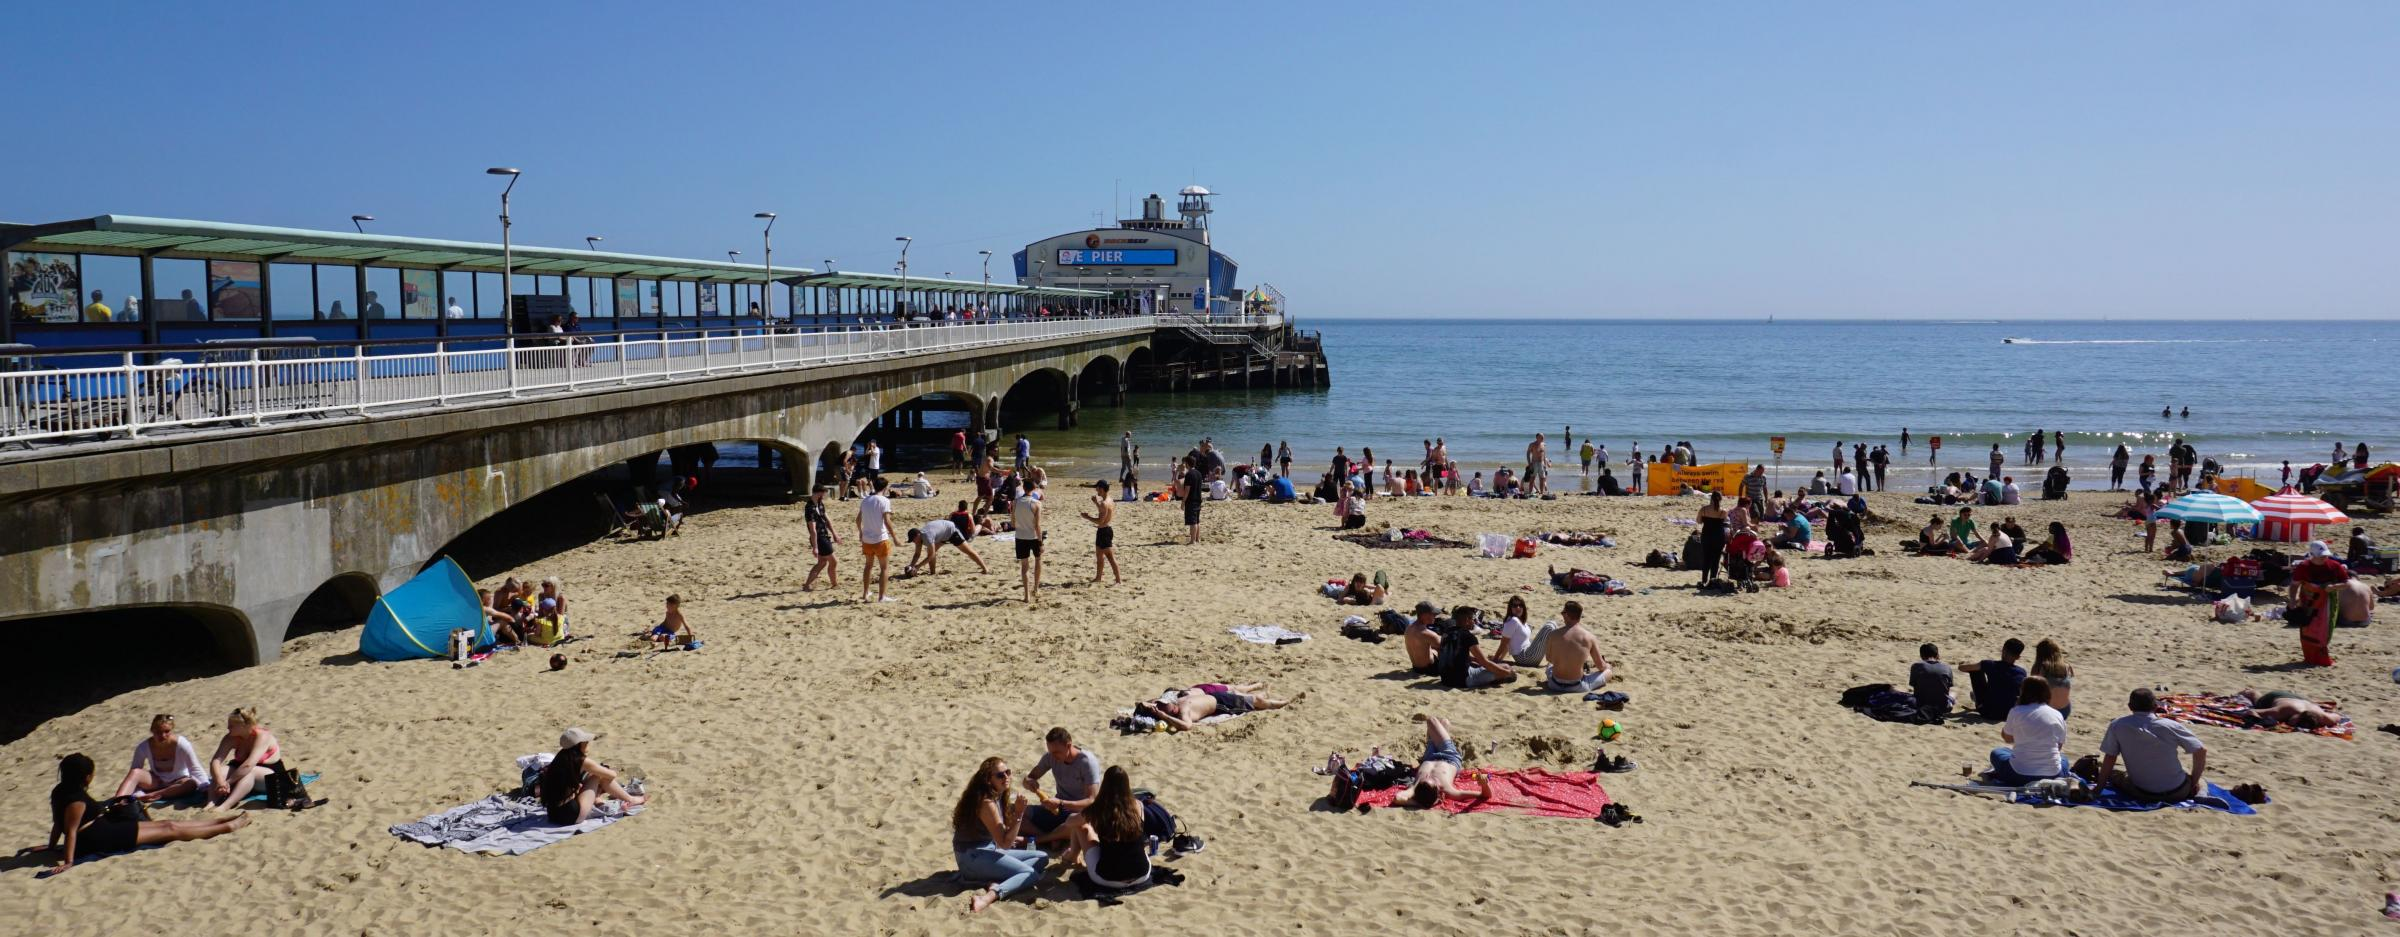 It's official: Bournemouth is one of the most Instagrammed seaside towns in the UK